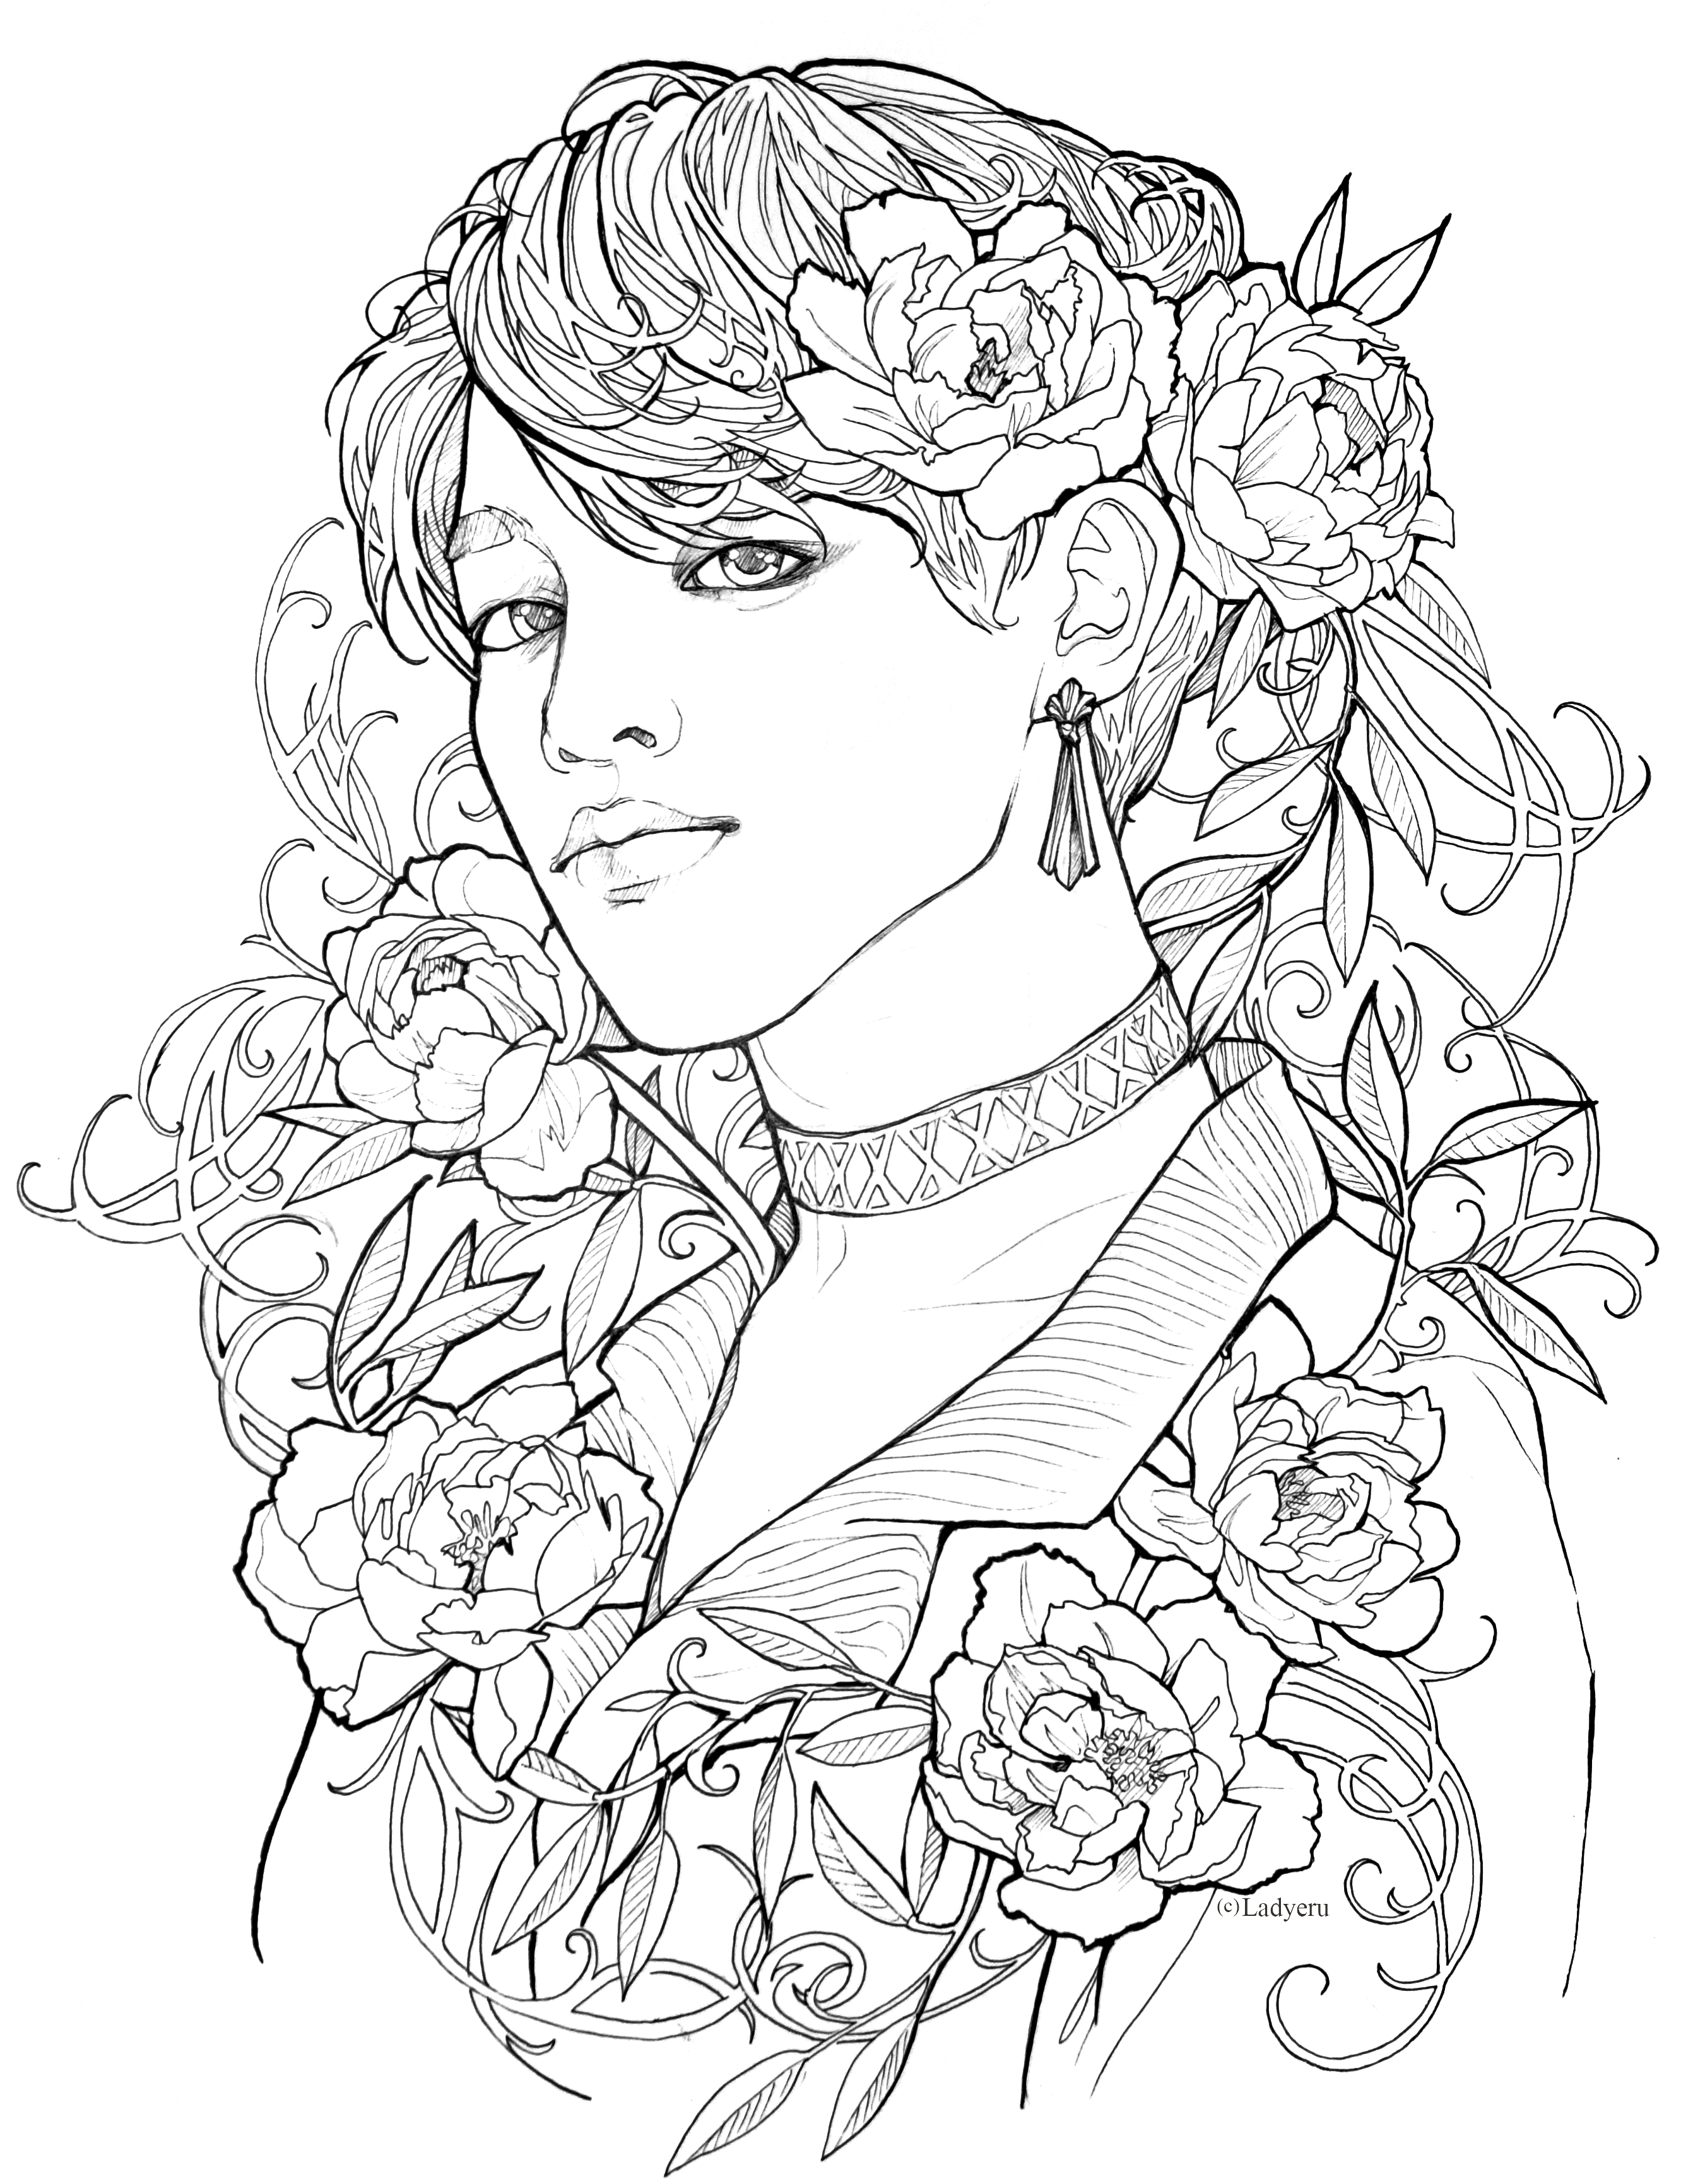 Park Jimin Lineart Page By Ladyeru 3 Bts Jimin Coloring Pages Bts Drawings Drawings